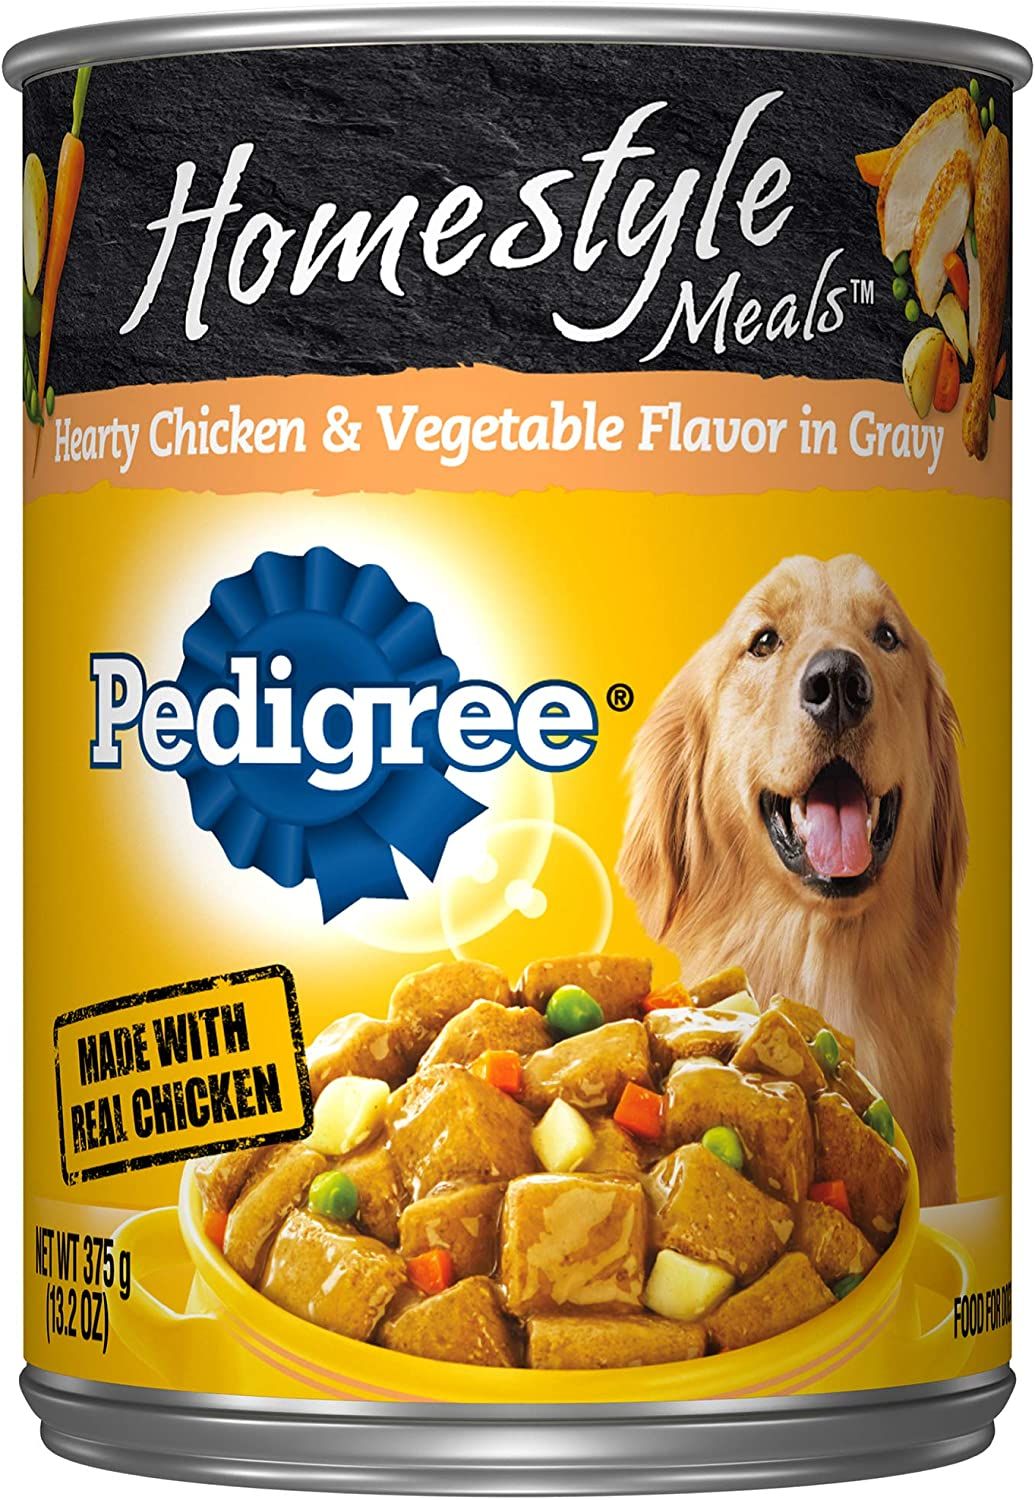 DISCONTINUED PEDIGREE Homestyle Meals Adult Canned Wet Dog Food Hearty Chicken and Vegetable Flavor in Gravy, 12 13.2 oz. Cans